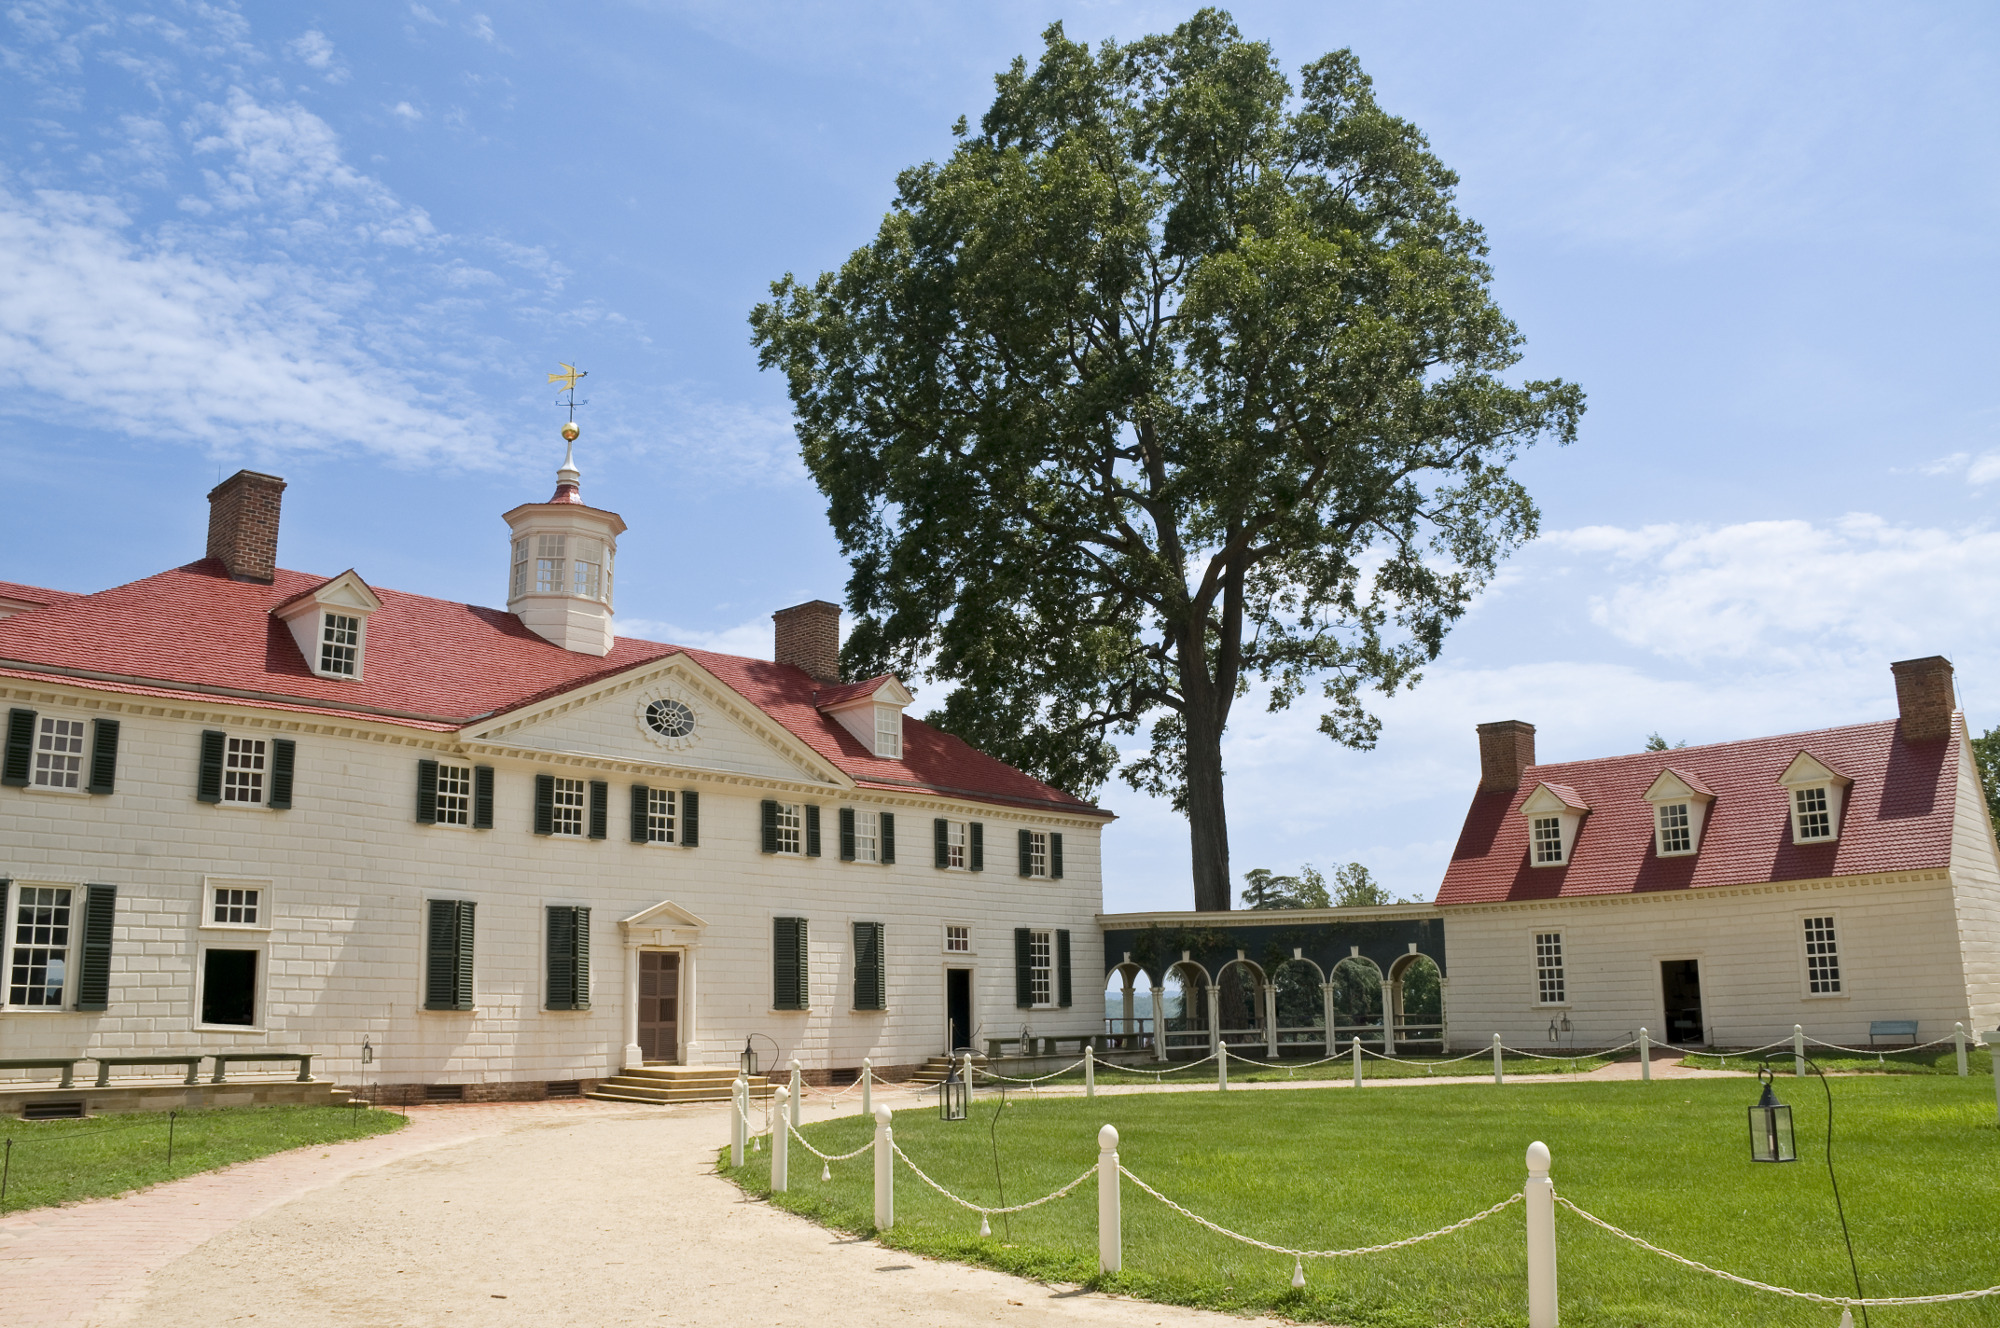 The Mount Vernon home of George Washington